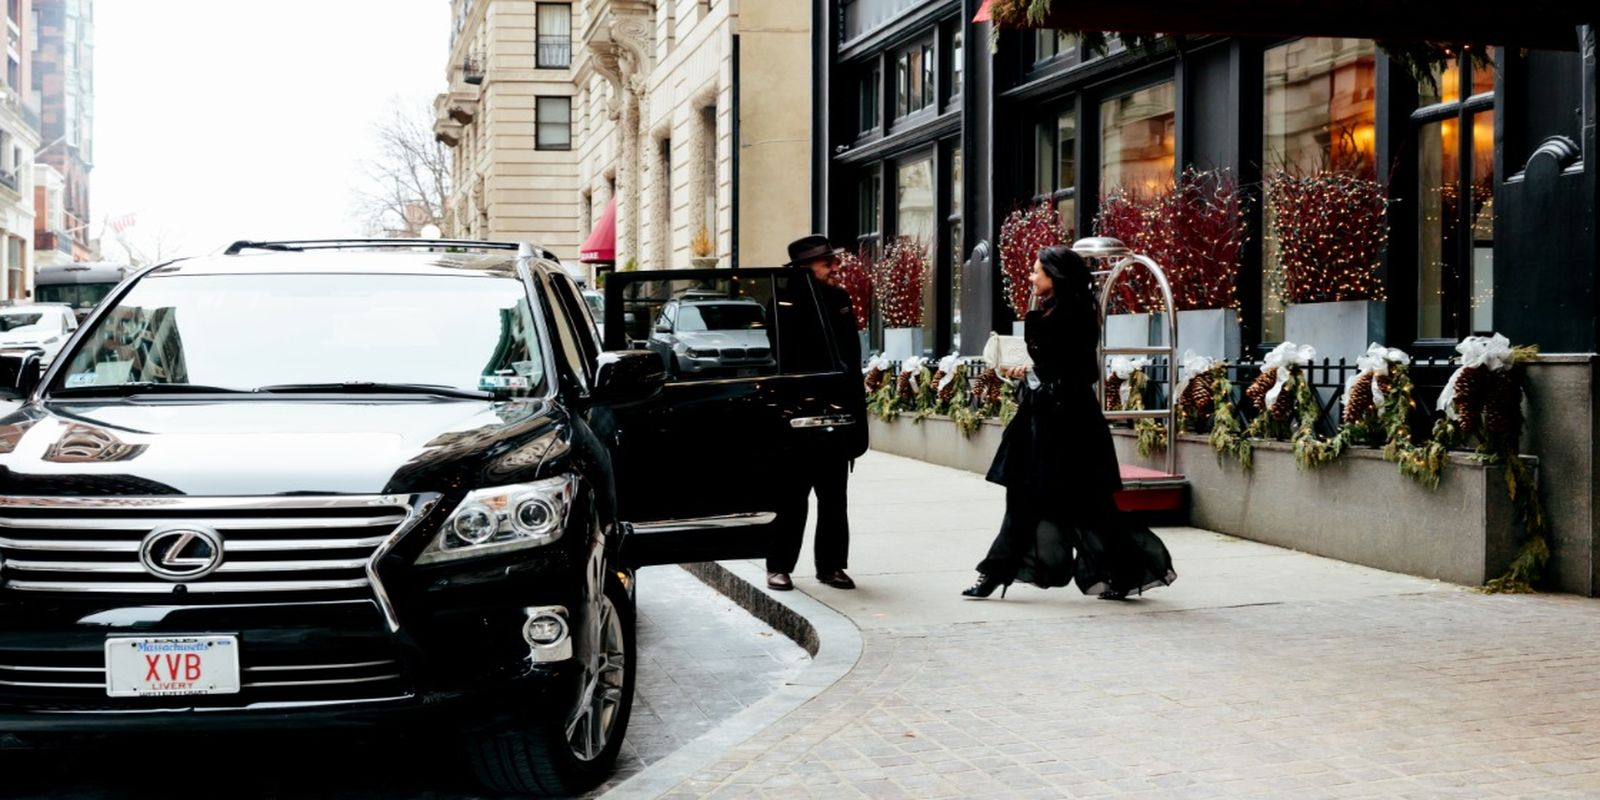 Photograph of a woman in the winter walking into our house Lexus SUV.